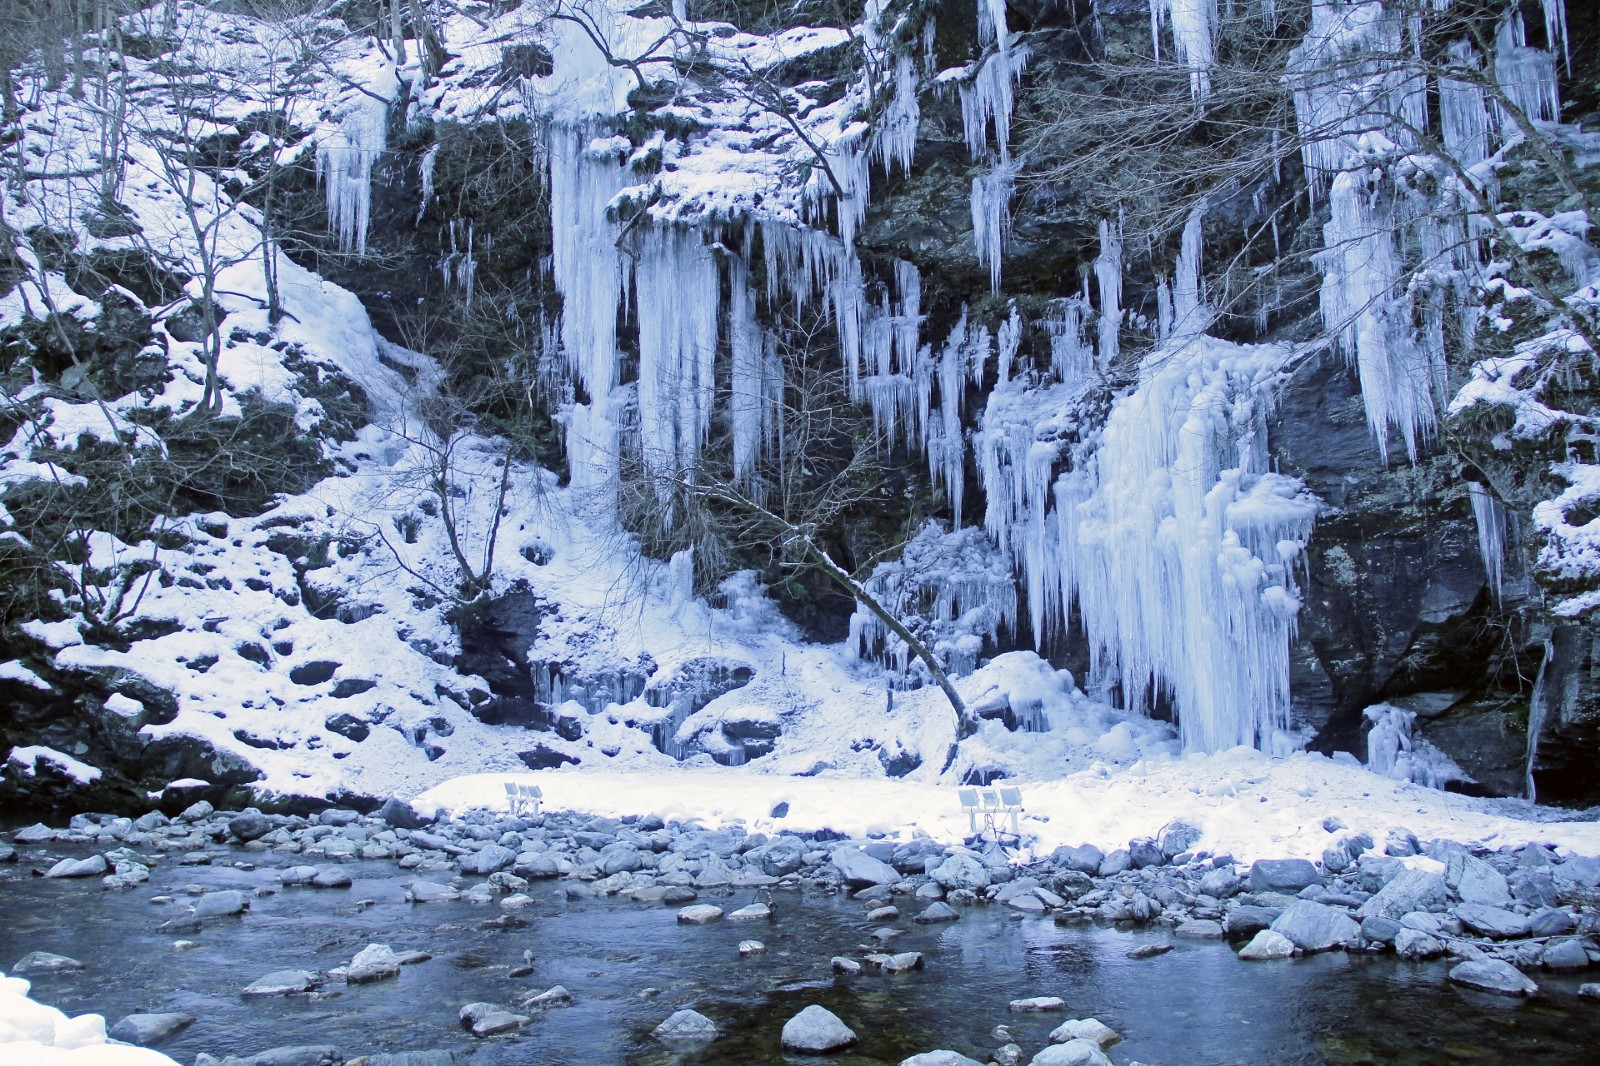 The natural art in winter: icicles of Misotsuchi